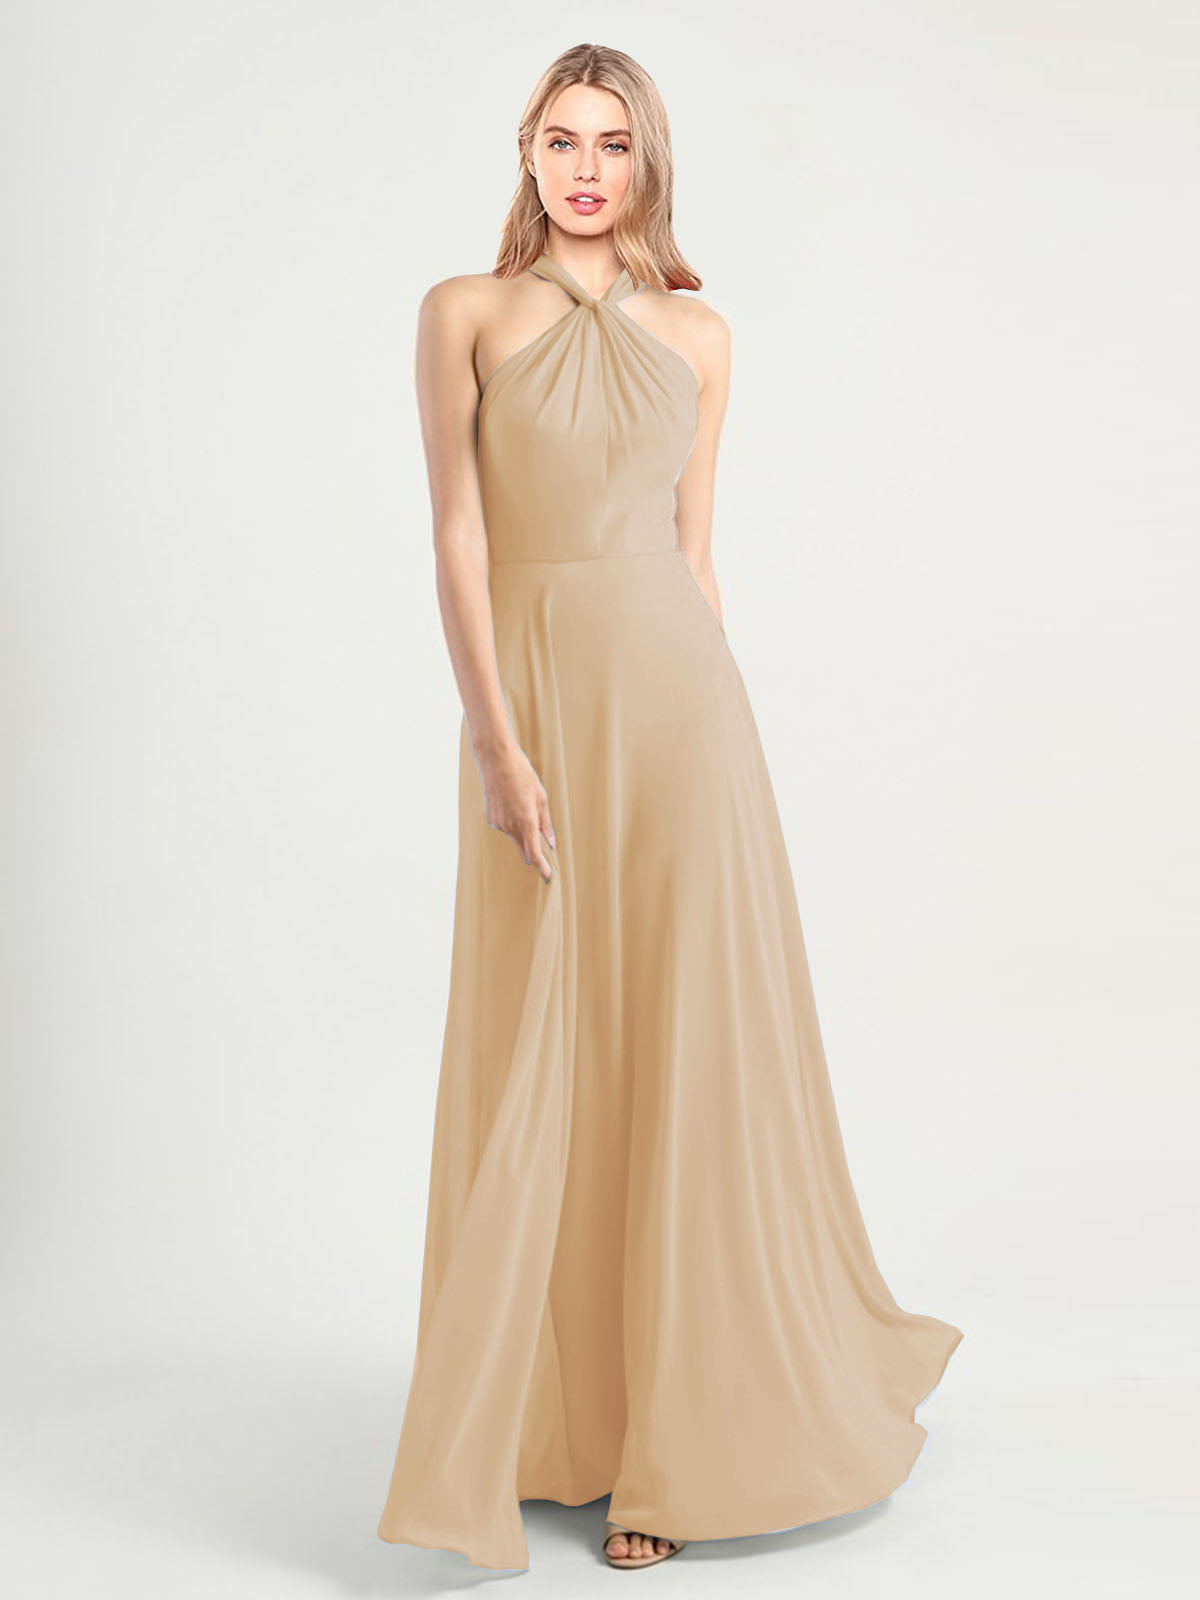 Long A-Line High Neck, Halter Sleeveless Champagne Chiffon Bridesmaid Dress Yoli